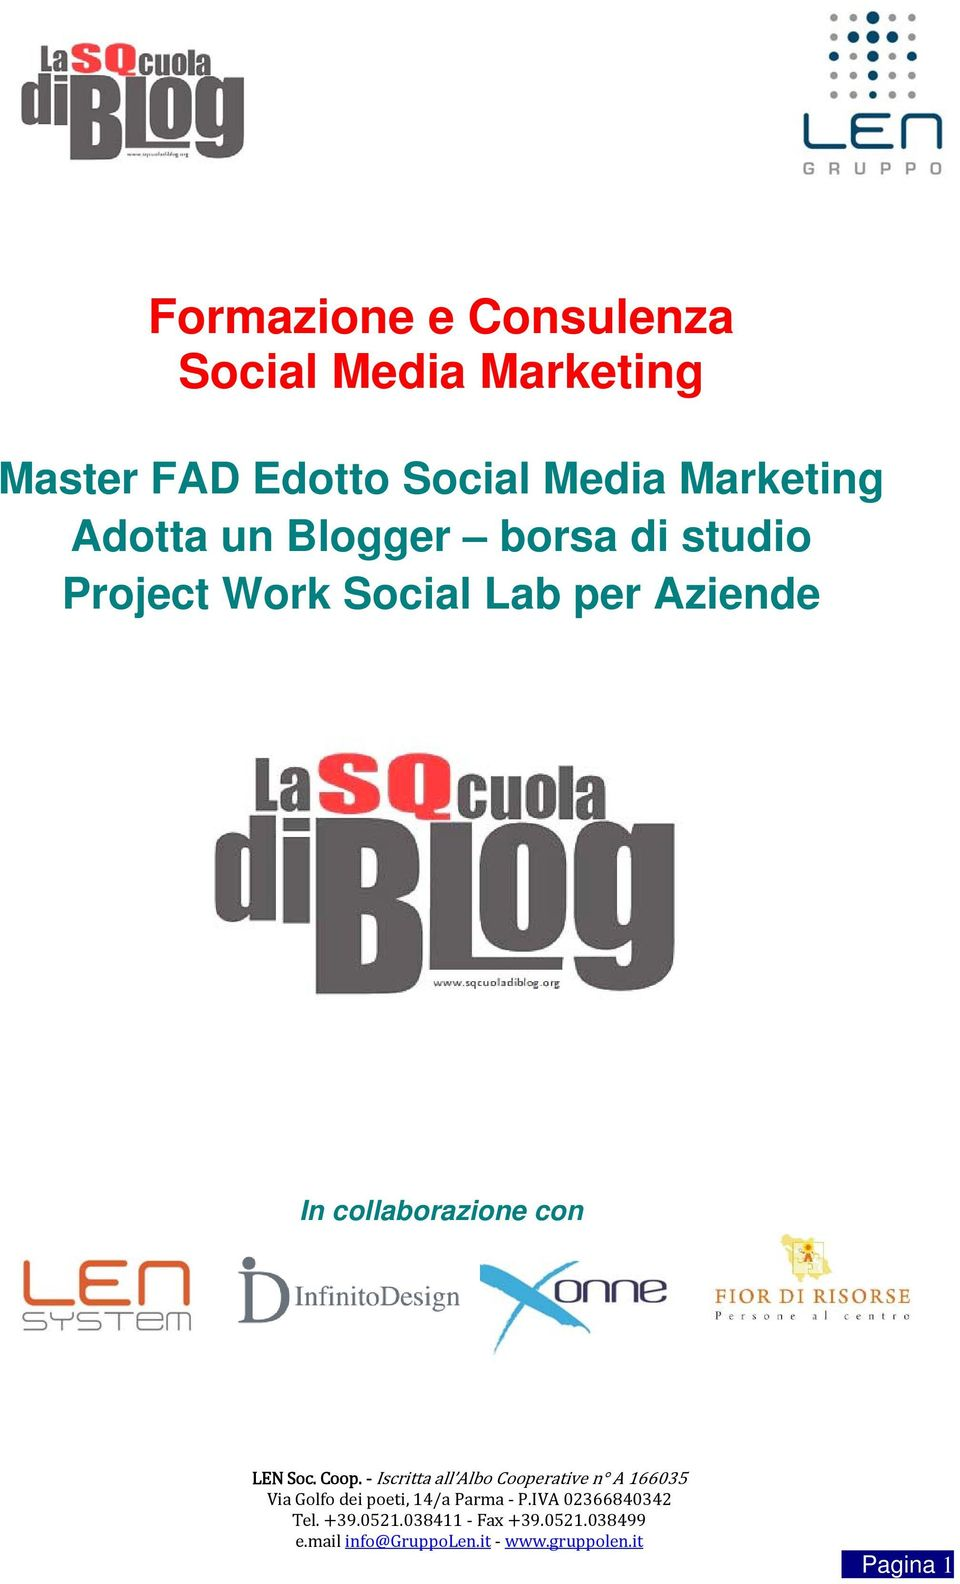 Adotta un Blogger borsa di studio Project Work